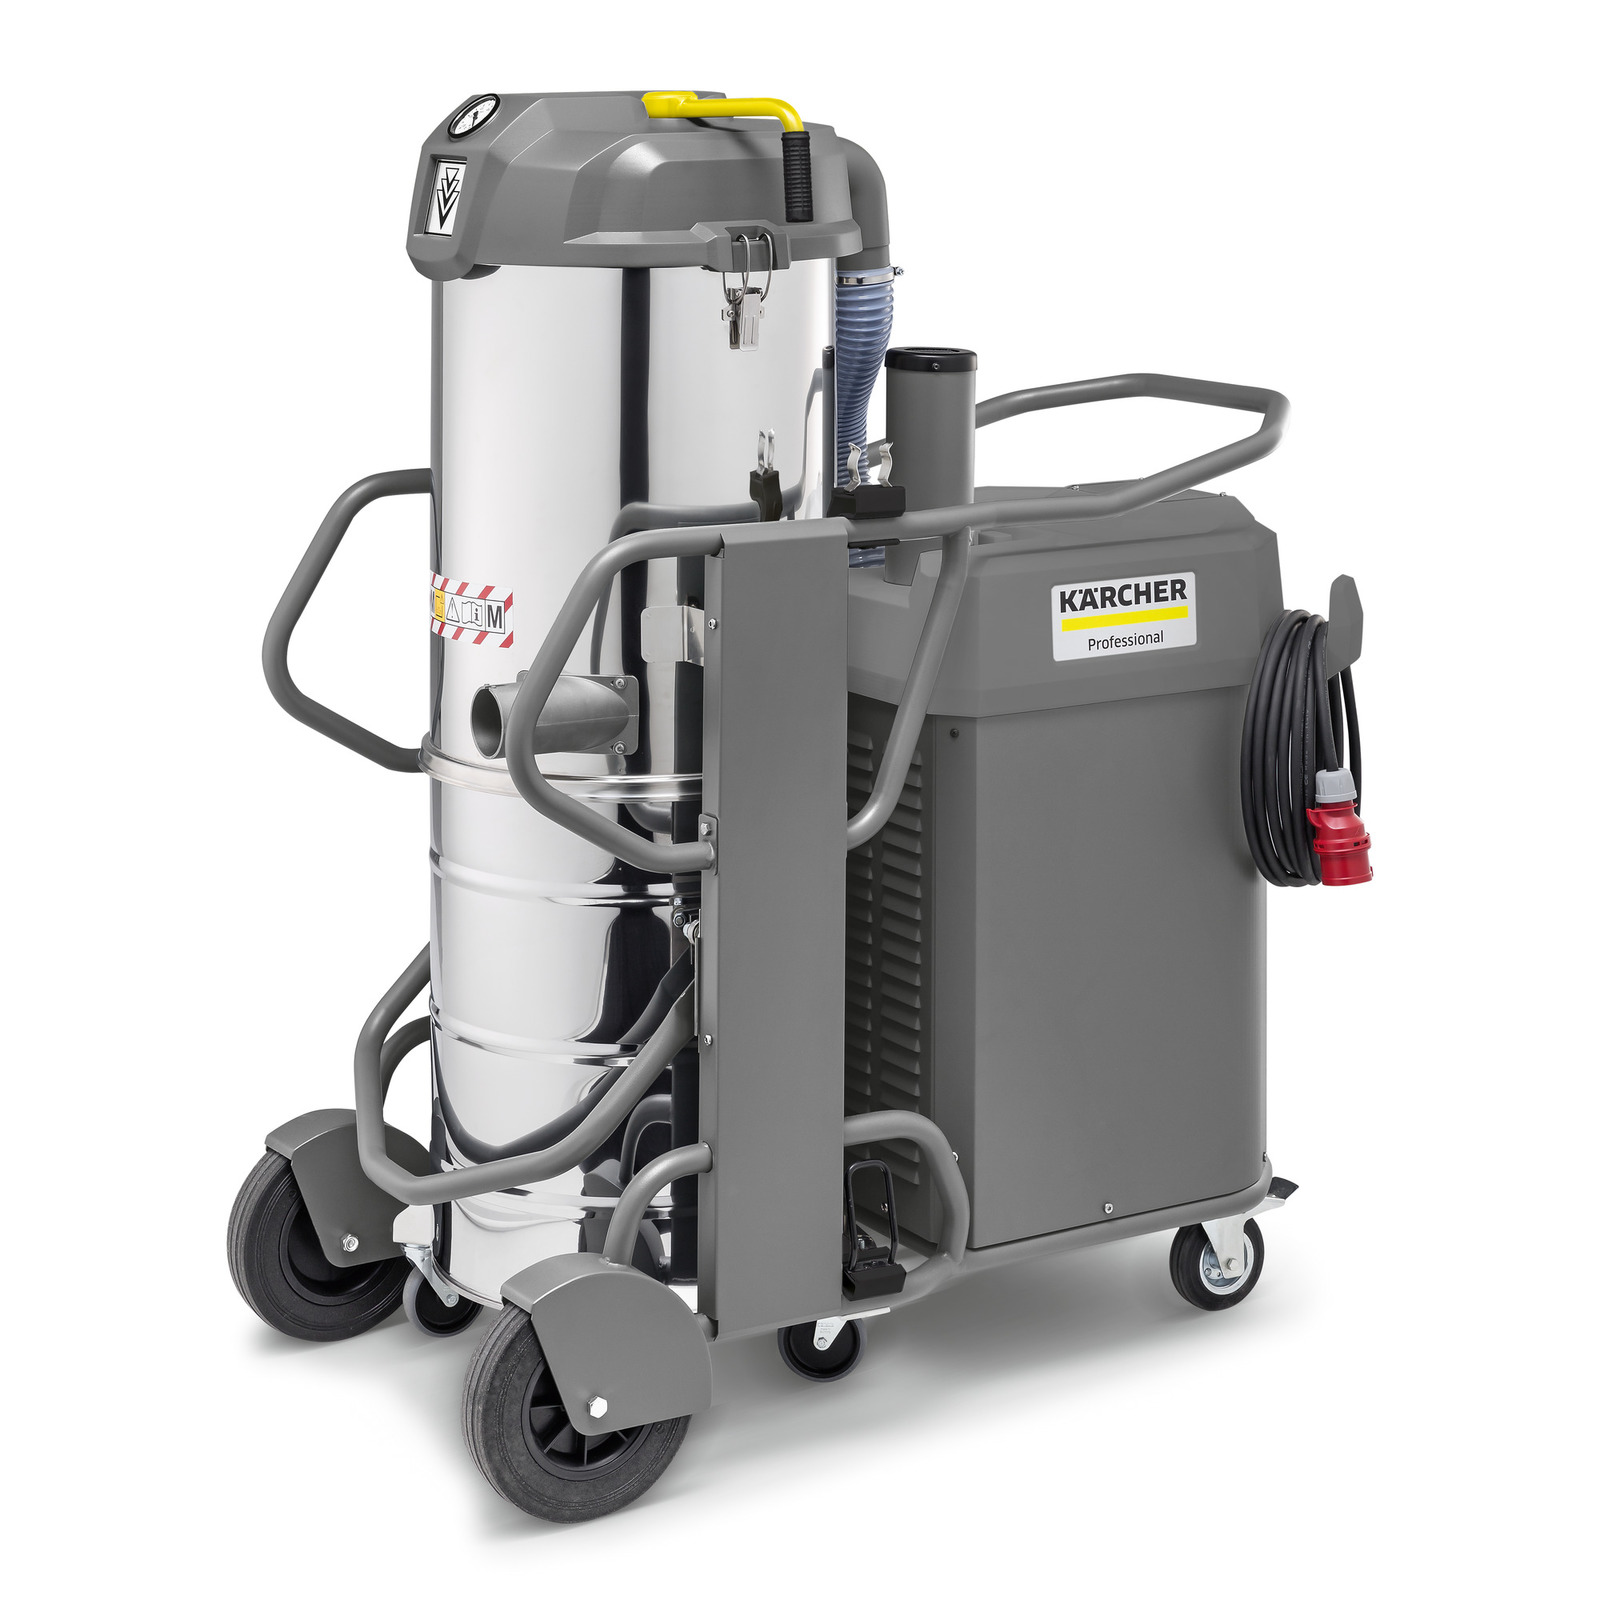 Karcher Industrial Vacuum Cleaner IVS 100 40 M